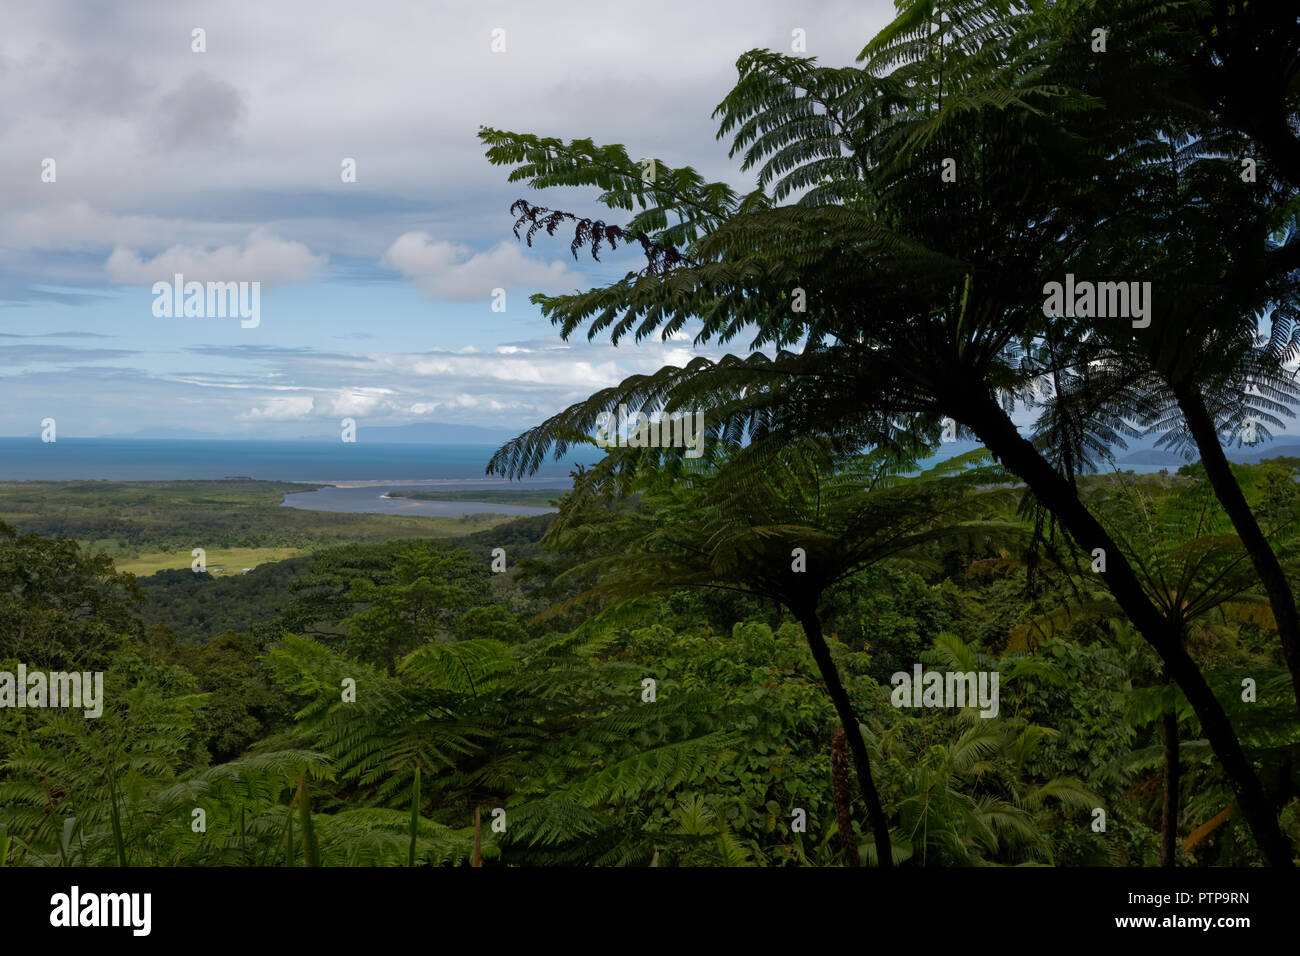 Rainforest view outlook - Stock Image